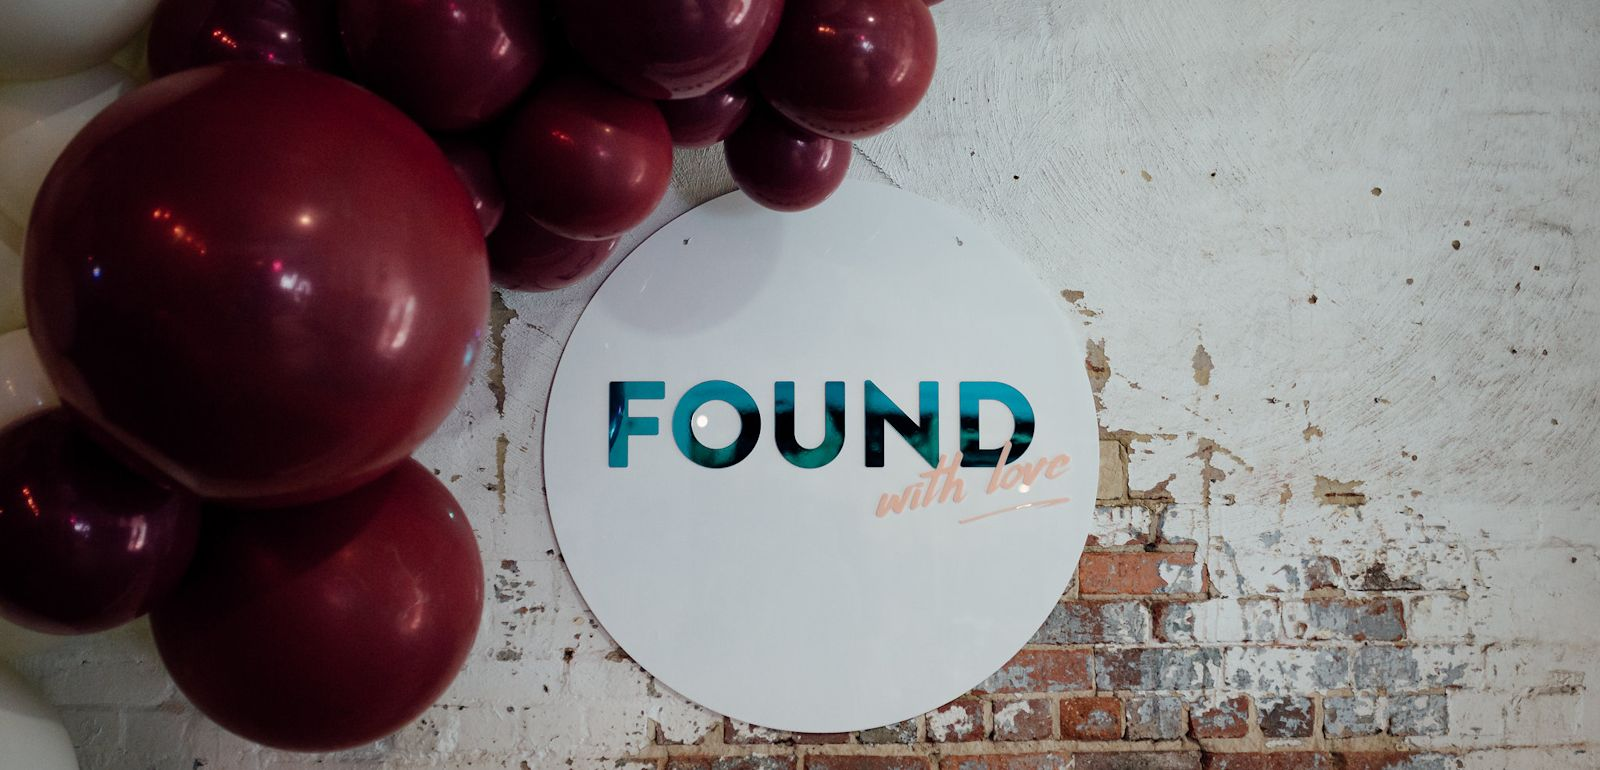 found with love